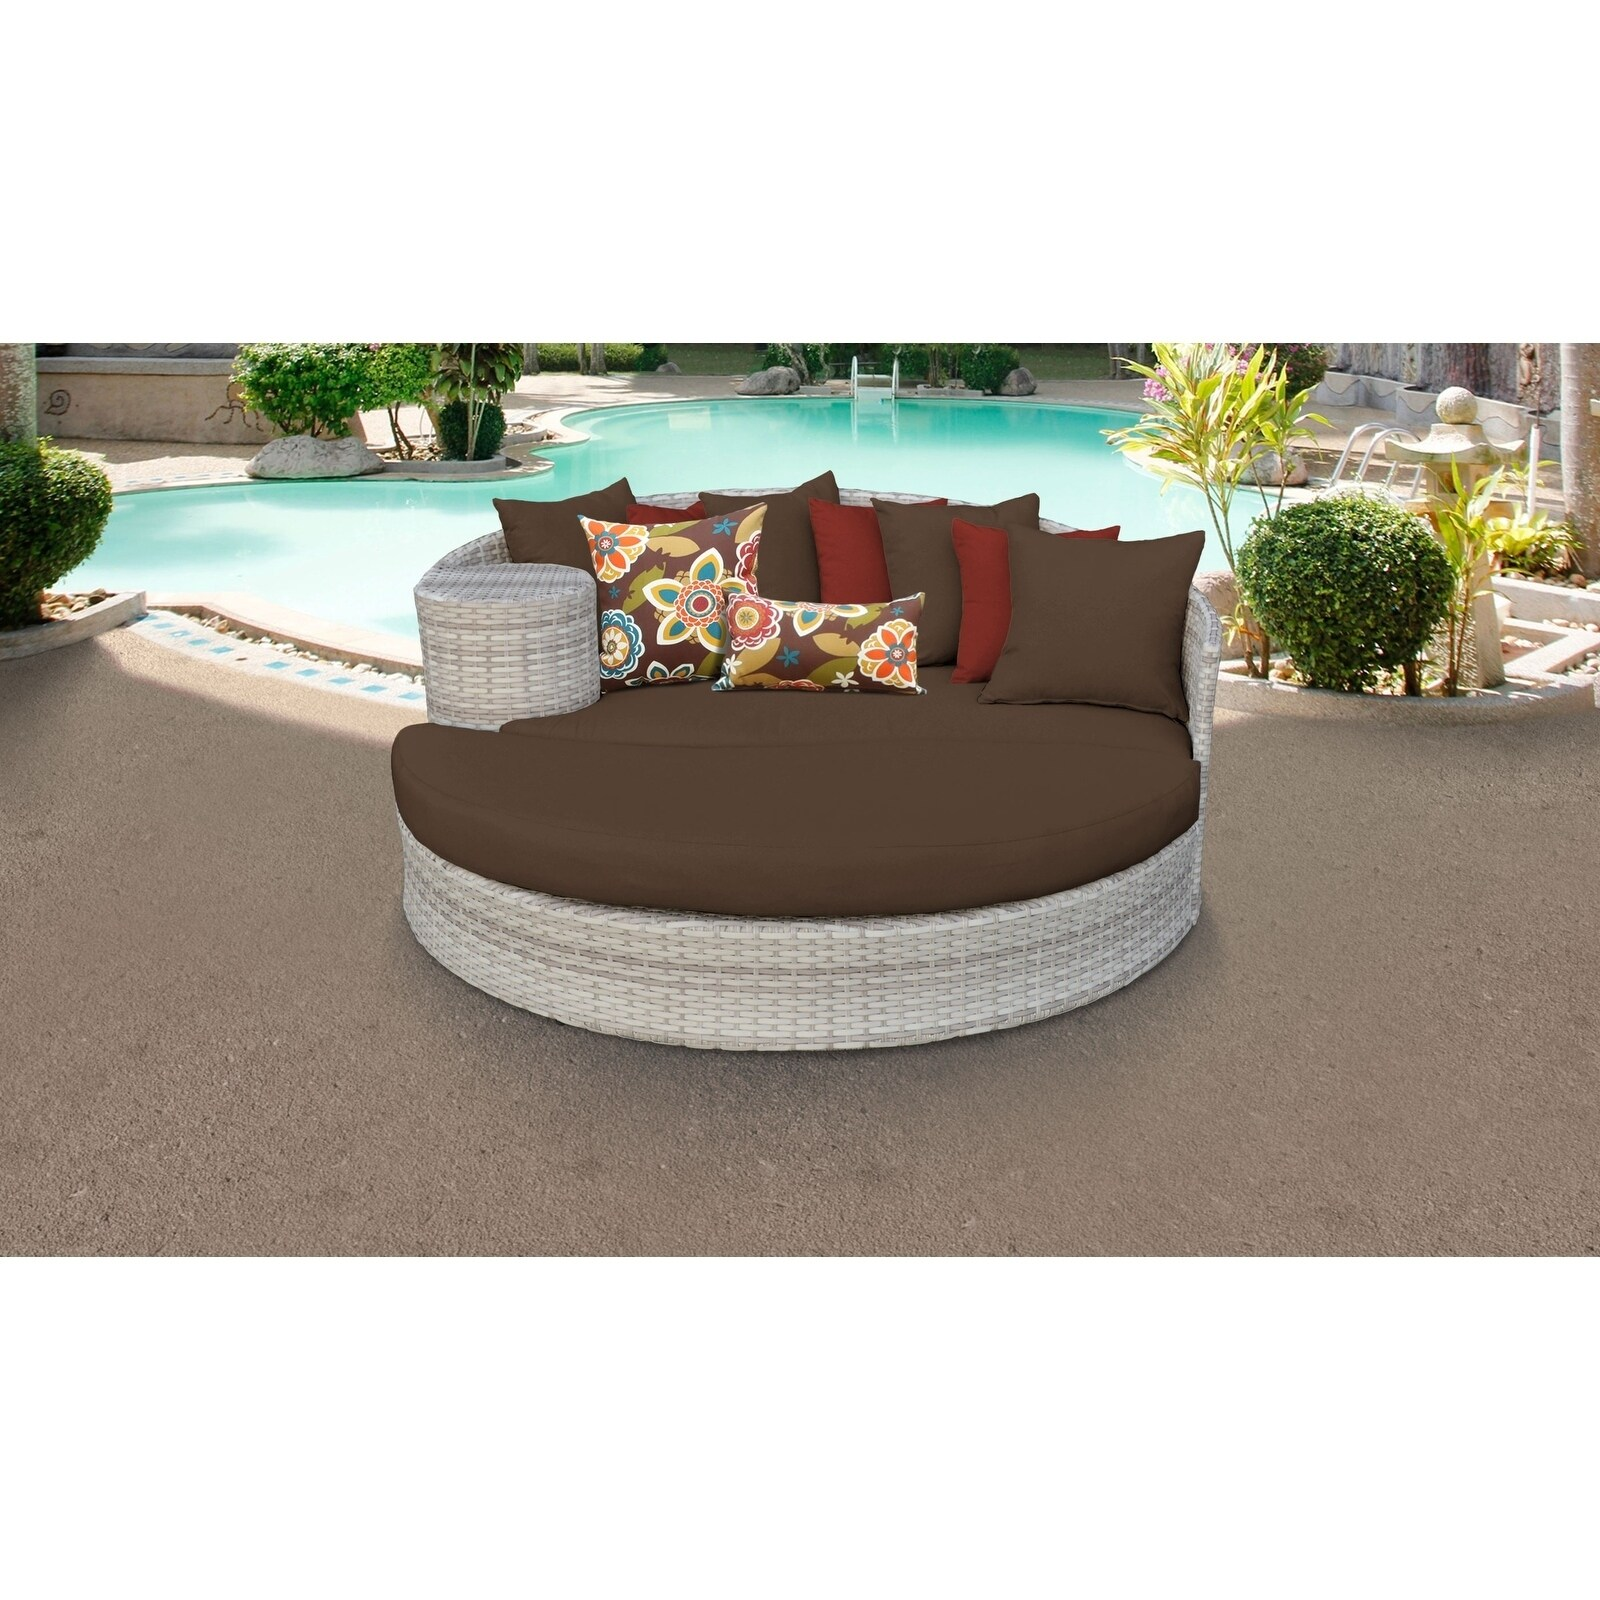 Fairmont Patio Furniture.Details About Fairmont Circular Sun Bed Outdoor Wicker Patio Furniture